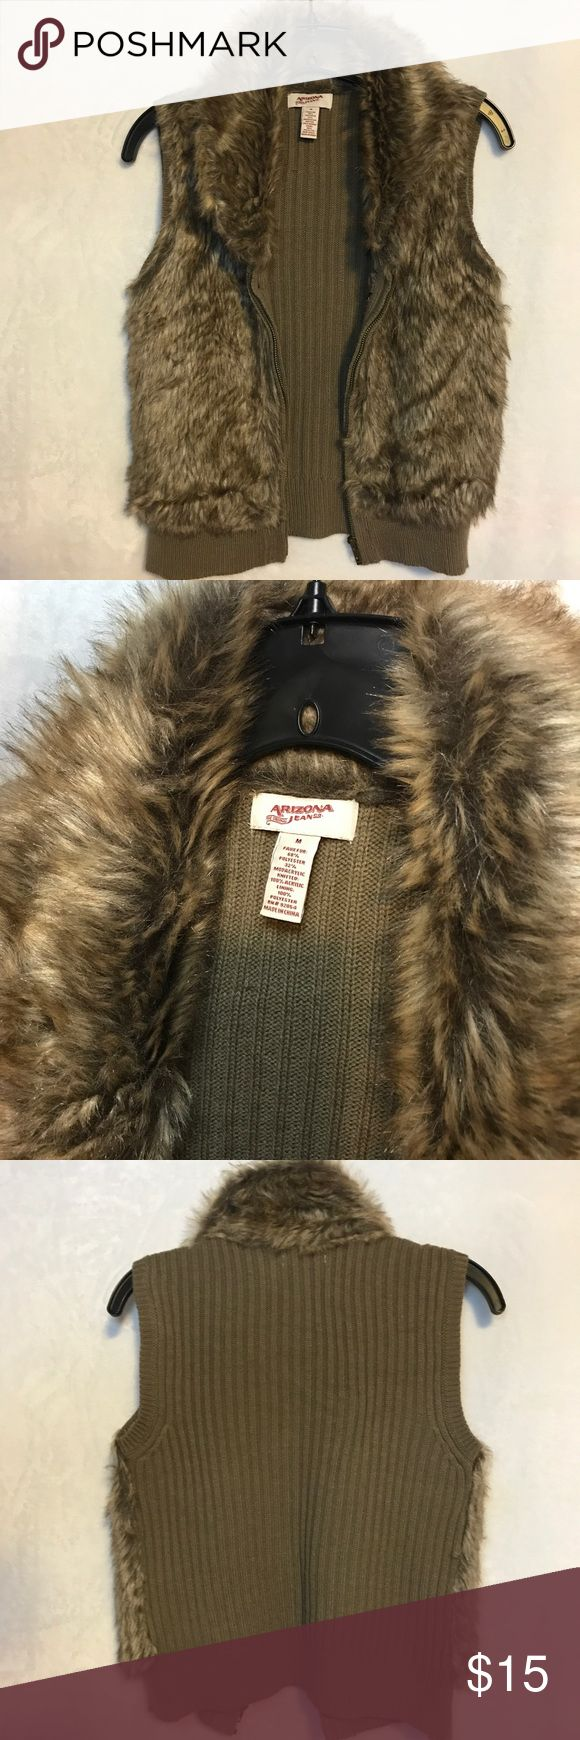 Brown fur vest Like new. Fur vest from Arizona Jean. Not real fur. Size M. Arizona Jean Company Jackets & Coats Vests